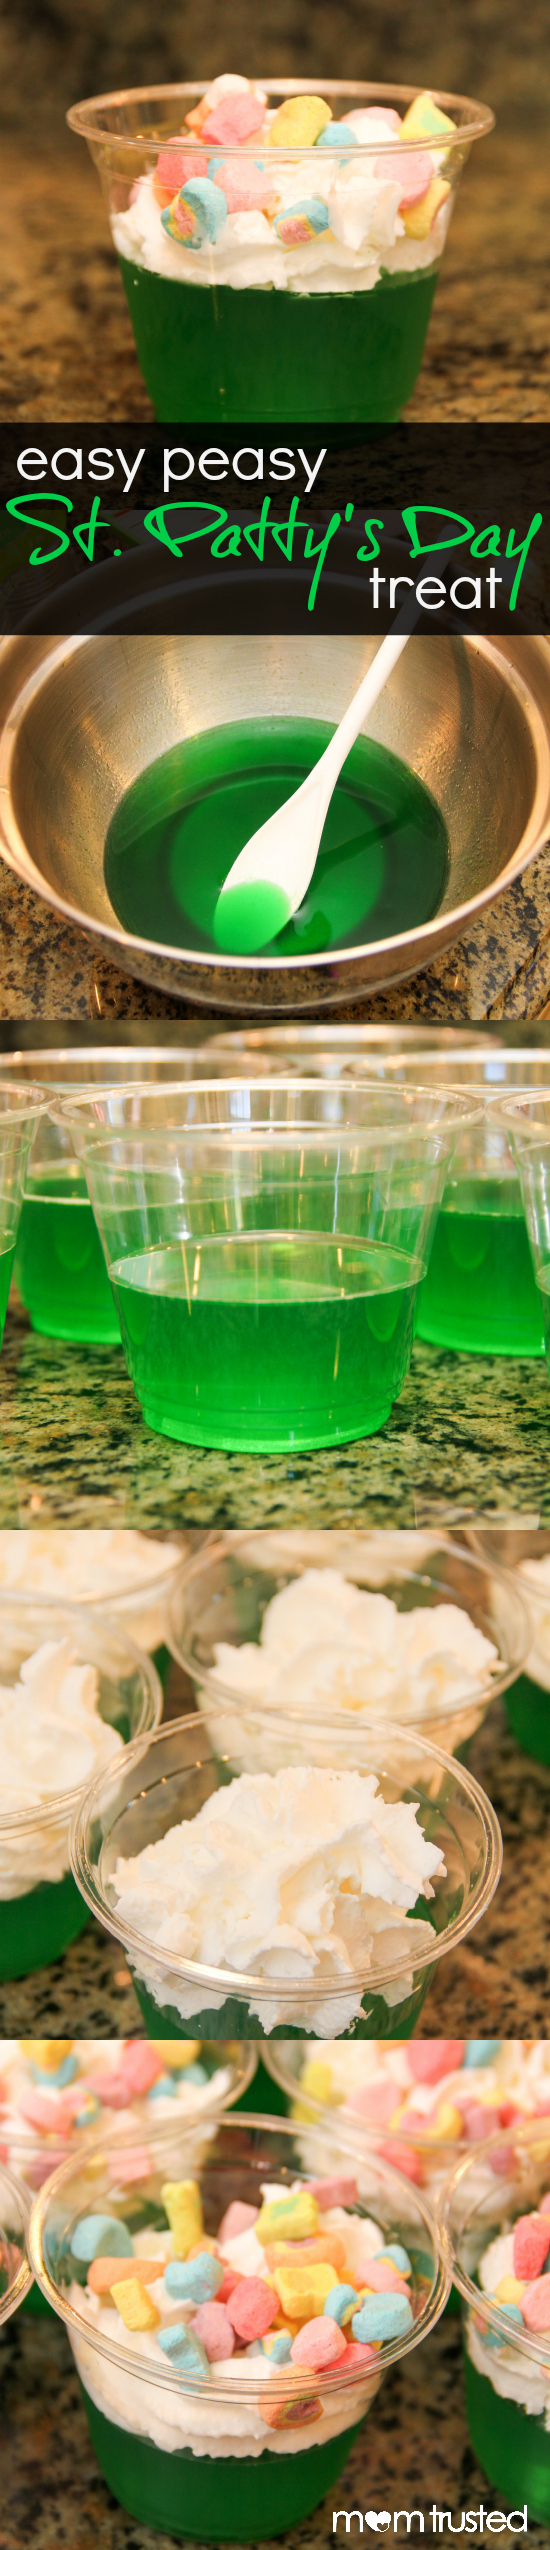 Easy Peasy St. Patricks Day Dessert st pattys day jello lucky charms treat.jpg.jpg